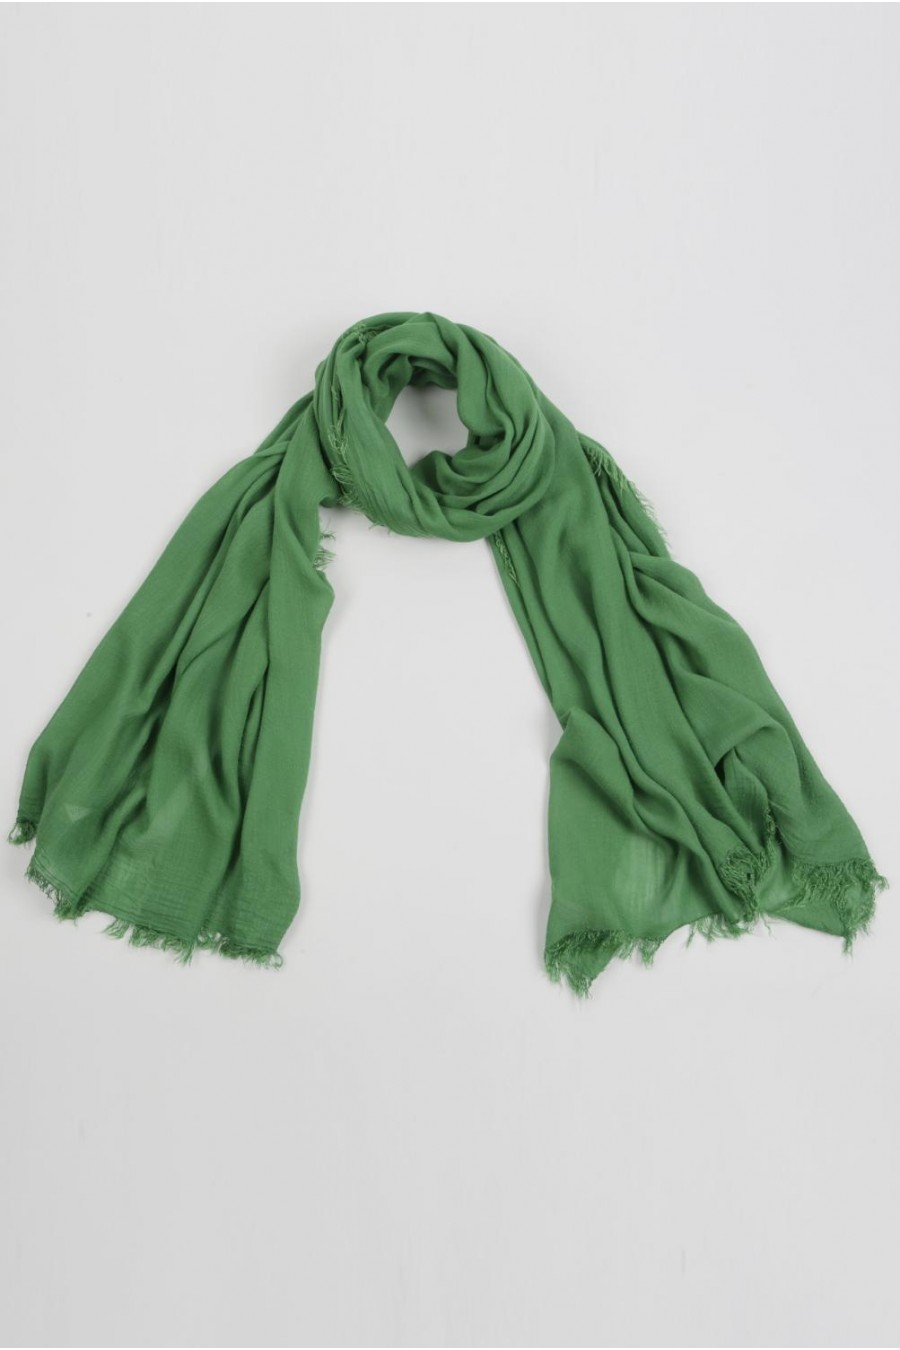 994382a33 Lightweight Summer Scarf Shawl Wrap 100% Bamboo Green | Italy in Cashmere IT